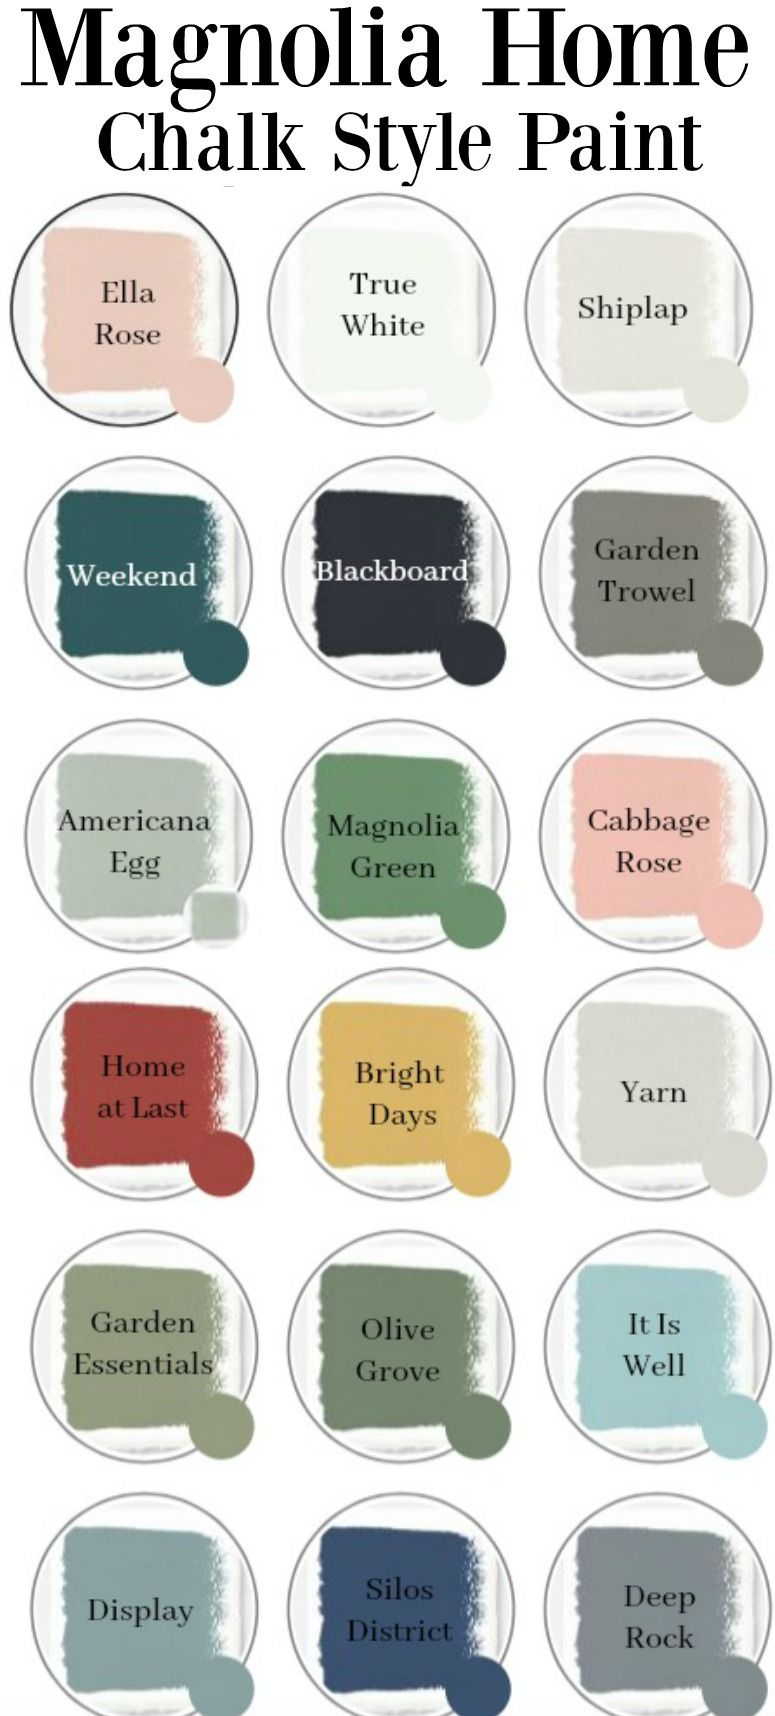 Chalk Paint Magnolia Home Chalk Paint Colors Sarah Joy Blog Chalk Paint Colors Furniture Painted Furniture Colors Magnolia Homes